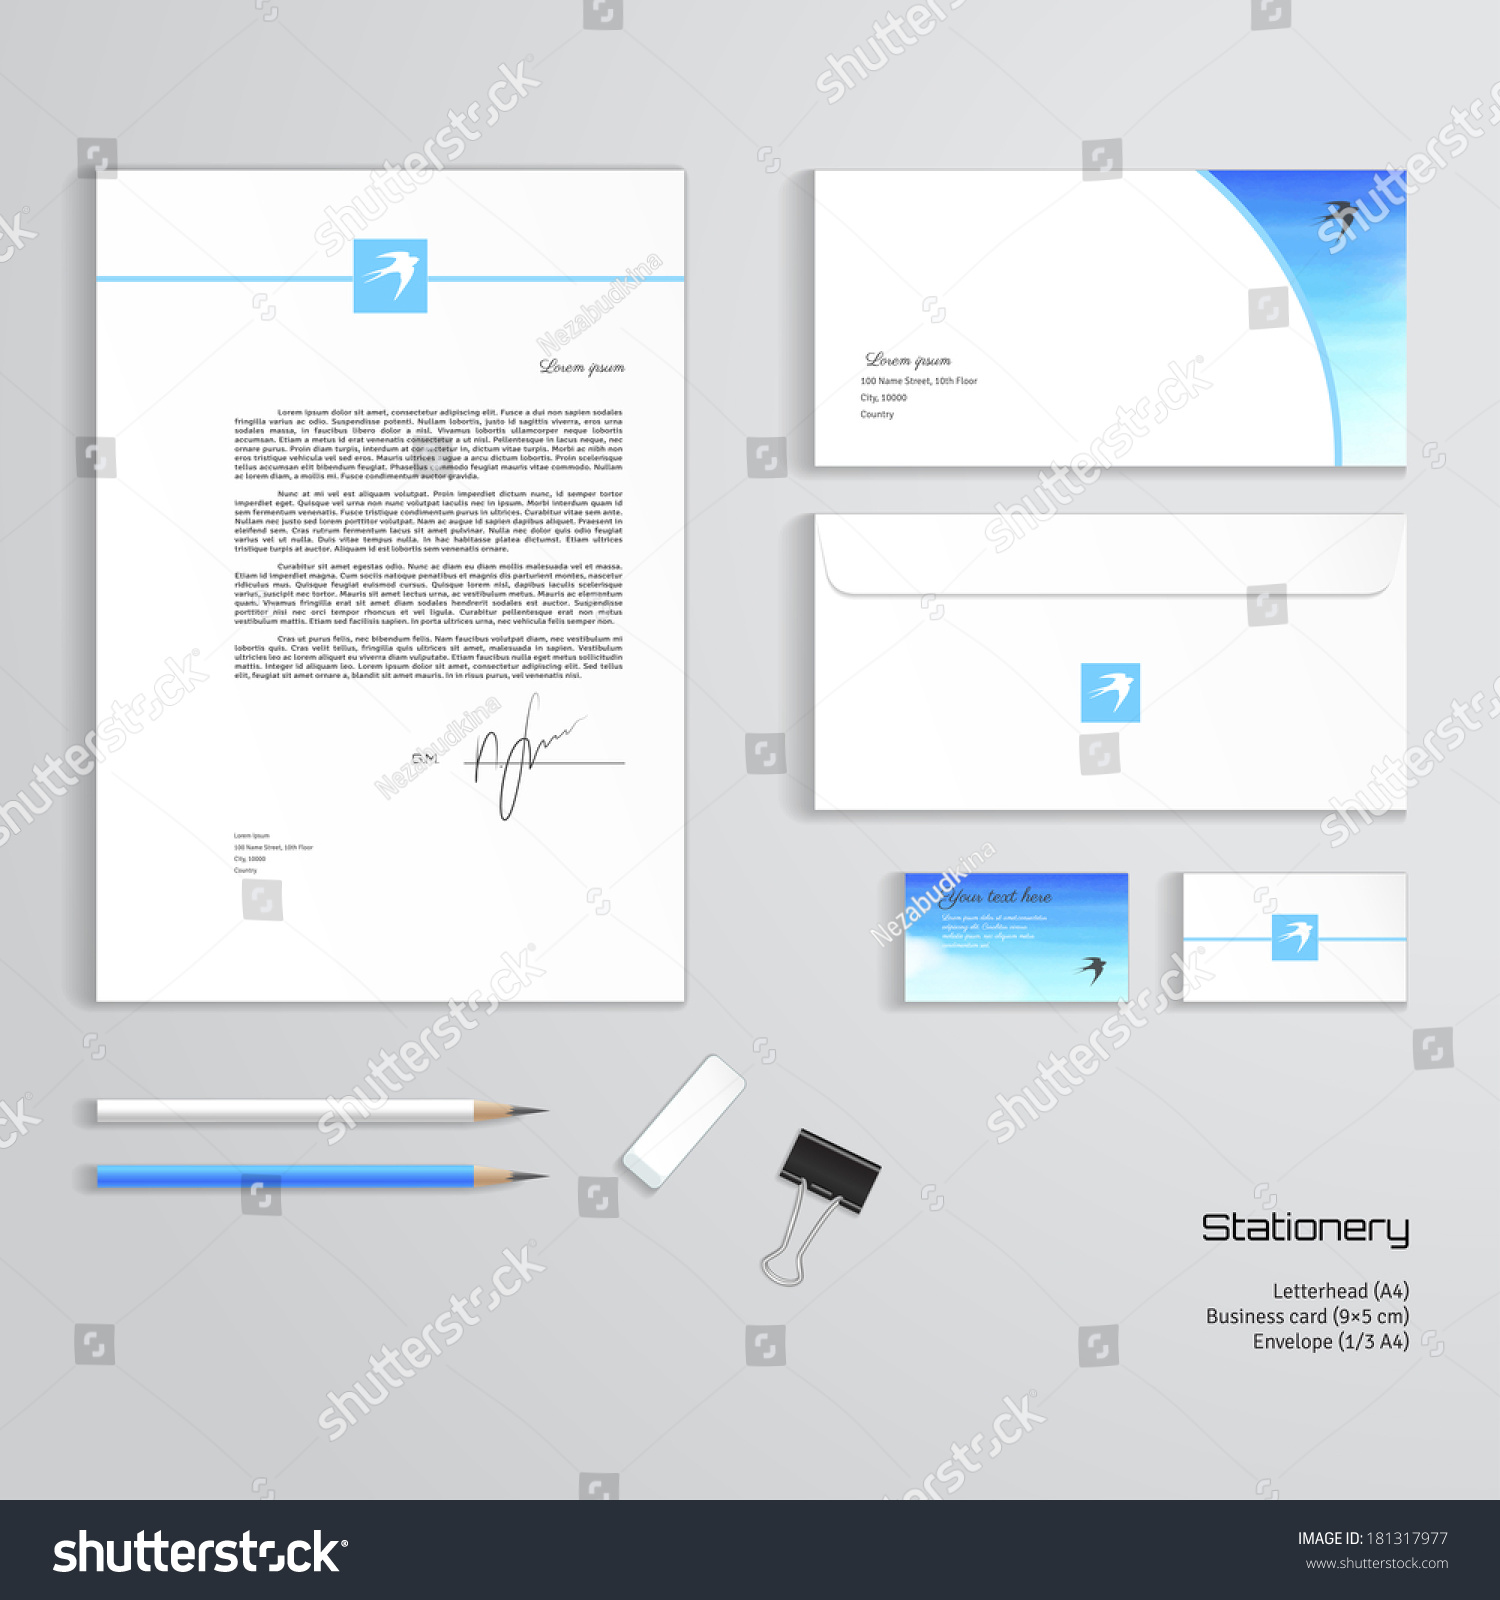 Vector templates handmade watercolor white cloud stock photo photo vector templates handmade watercolor white cloud sky and swallow letterhead envelope cheaphphosting Image collections